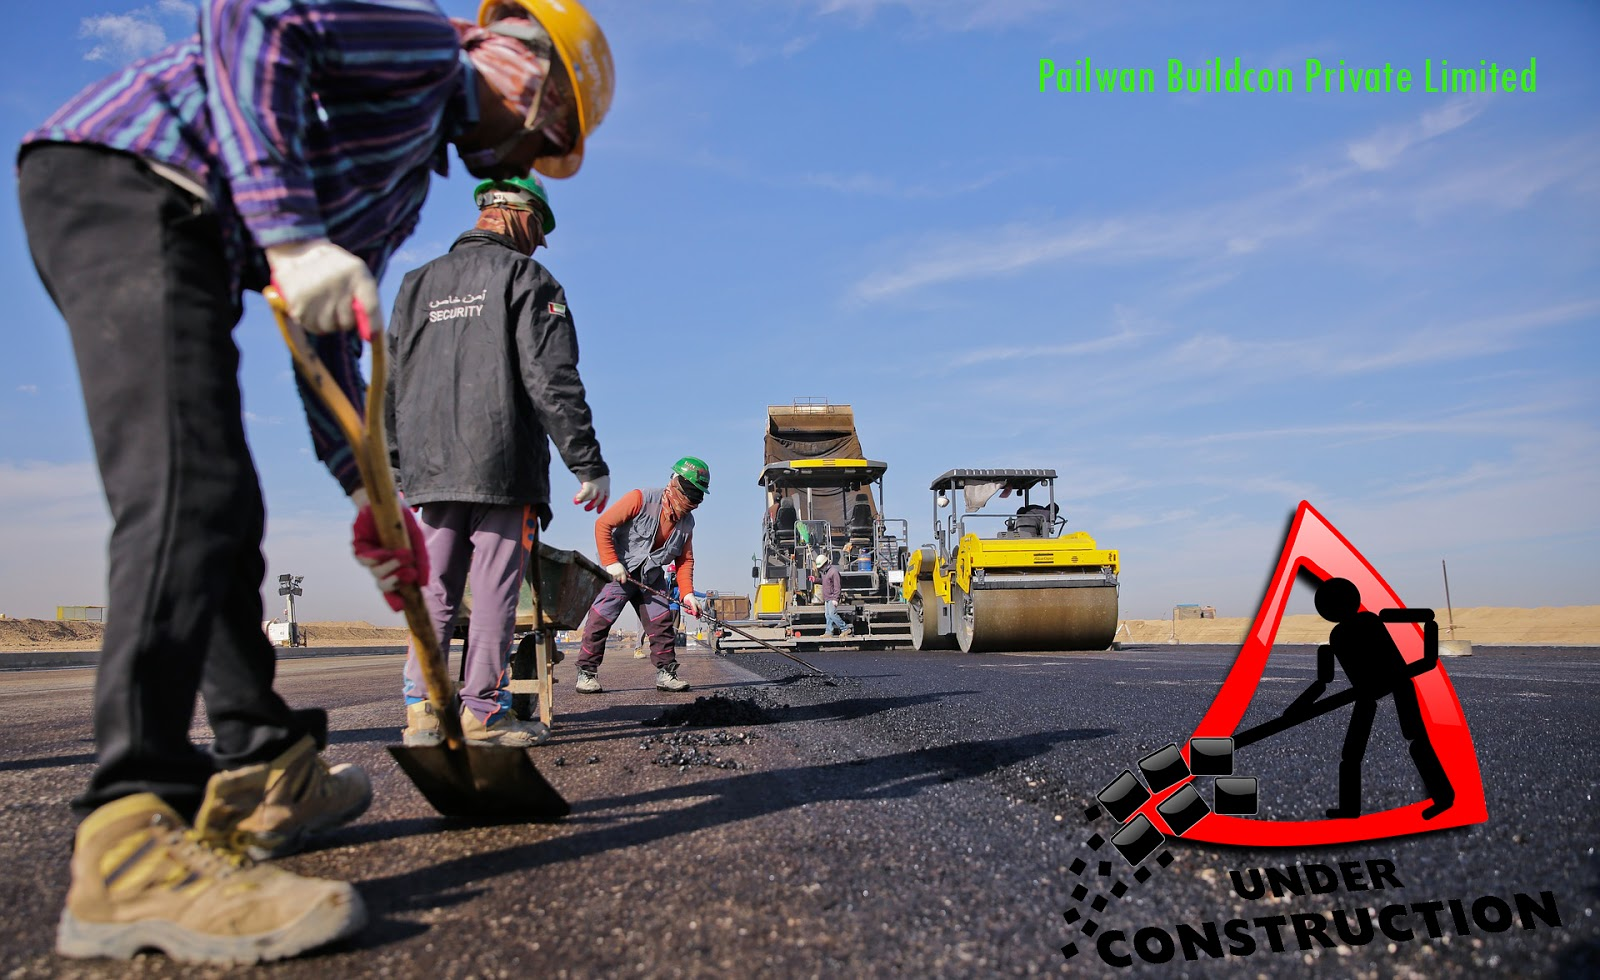 Services of Pailwan Buildcon Private Limited - Best Road Construction Company in Jamakhandi Bagalkot Karnataka,Best Road Contractor in Jamakhandi Bagalkot Karnataka,Best Building Contractors in Jamakhandi Bagalkot Karnataka,Best Civil Contractors in Jamakhandi Bagalkot Karnataka,Best Contractors in Jamakhandi Bagalkot Karnataka,Best Excavating Service Company in Jamakhandi bagalkot Karnataka,Best General Contracting Company in Jamakhandi bagalkot Karnataka,Best Mine Development Company in Jamakhandi Bagalkot Karnataka,Best Water Lines Construction Company in Jamakhandi Bagalkot Karnataka,Best Sewer Lines Construction Company in Jamakhandi Bagalkot Karnataka,Best Logging Service Company in Jamakhandi Bagalkot Karnataka,Best Logging Service Company in Jamakhandi Bagalkot Karnataka,Best Drilling and Blasting Service Company in Jamakhandi Bagalkot Karnataka,Best Clearing and Hauling Service Company in Jamakhandi Bagalkot Karnataka,Best Envirocleanup  Service Company in Jamakhandi Bagalkot Karnataka, contractors in Karnataka, road contractors in Karnataka, civil contractors in Karnataka, civil contractors in bagalkot, civil contractors in jamakhandi, civil contractors in athani, civil contractors in near me, road construction contractors in Karnataka, road construction contractors in jamakhandi, road construction contractors in bahalkot, road construction contractors in bijapur, road construction contractors in athani, top contractors in Karnataka, top contractors in jamakhandi, top contractors in bagalkot, top contractors in athani, top civil contractors in jamakhandi, top civil contractors in belagavi, top civil contractors in athani,  water supply contractors in Karnataka, water supply contractors in jamakhandi,  water supply contractors in bagalkot, waterproofing contractors in jamakhandi, waterproofing contractors in Karnataka, waterproofing contractors, road building materials, road building equipments, road building equipments for rent, road building equipments in